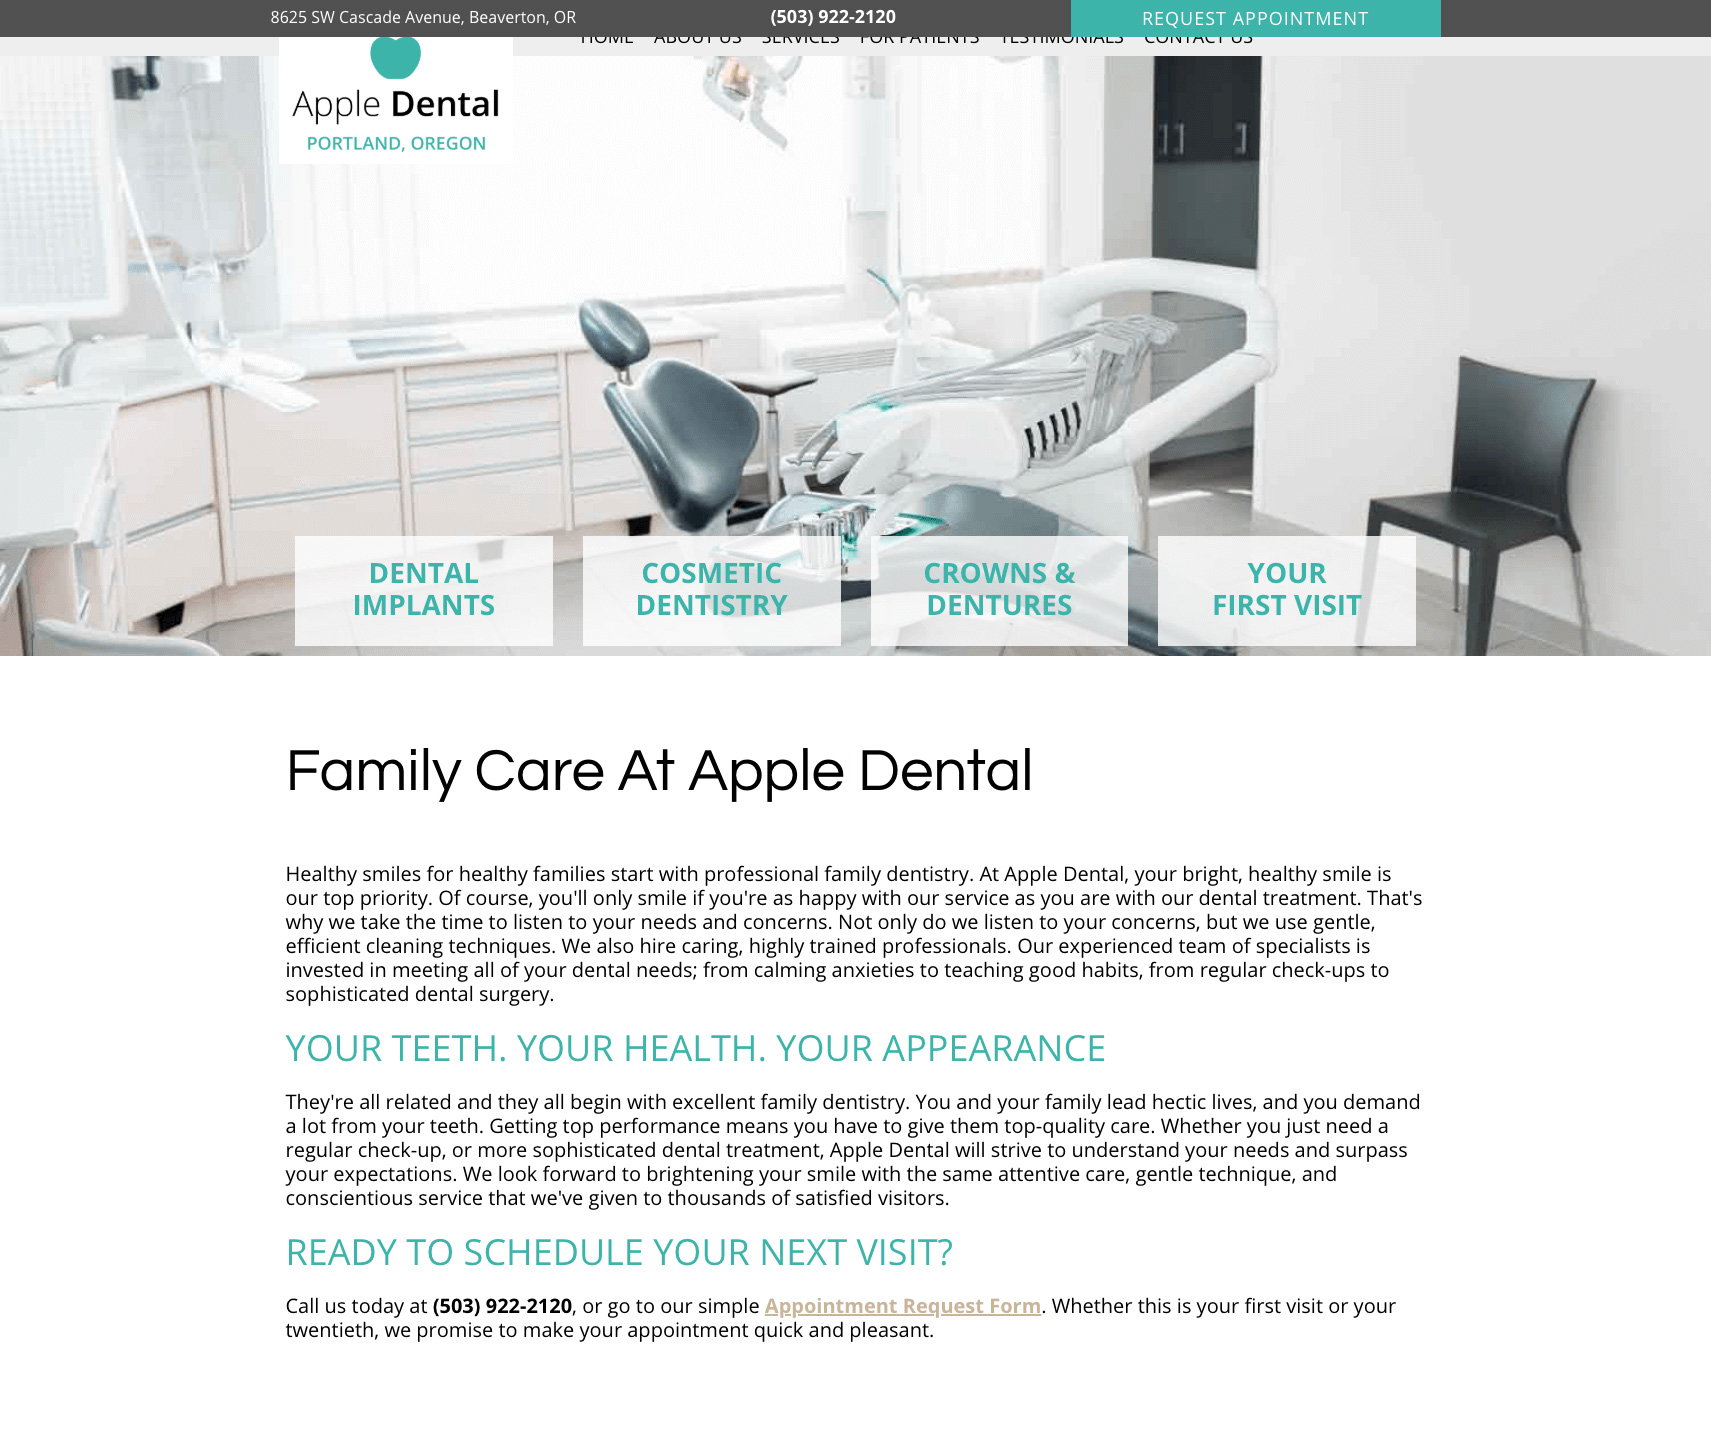 This is an example of our design called Apple Dental